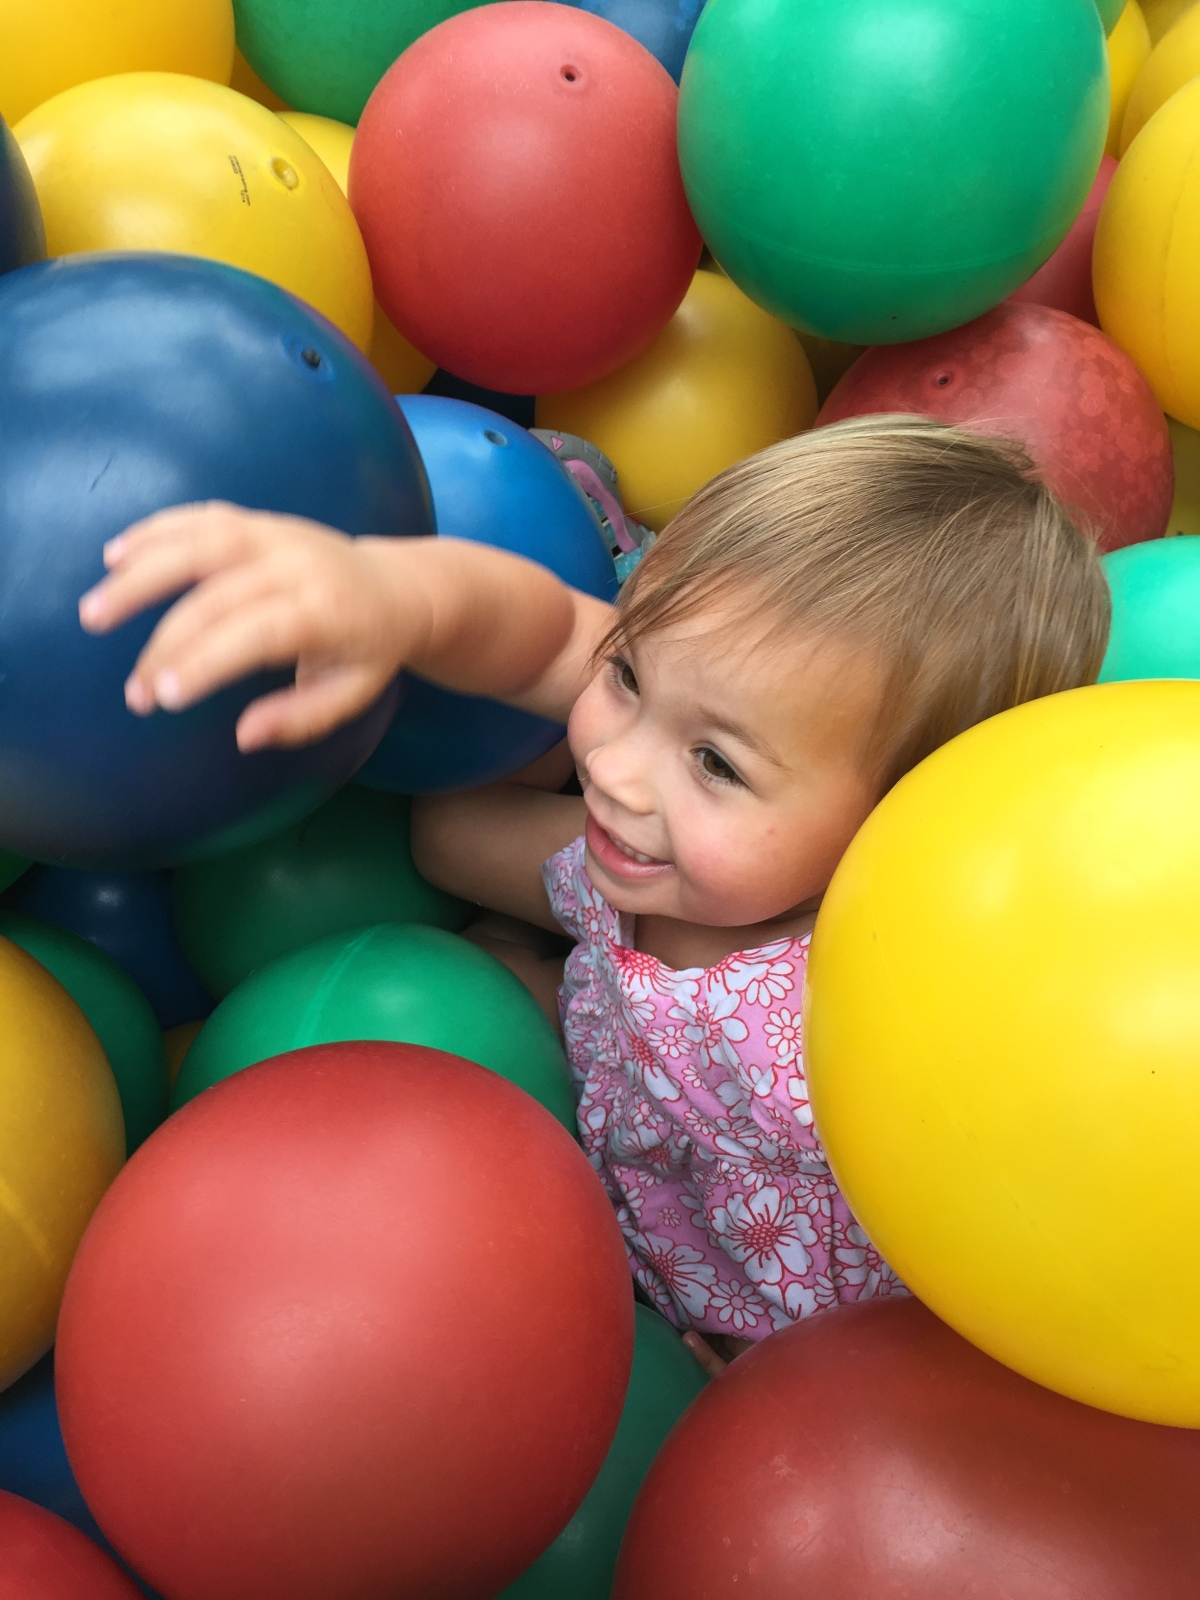 Adorable baby in a ballpit